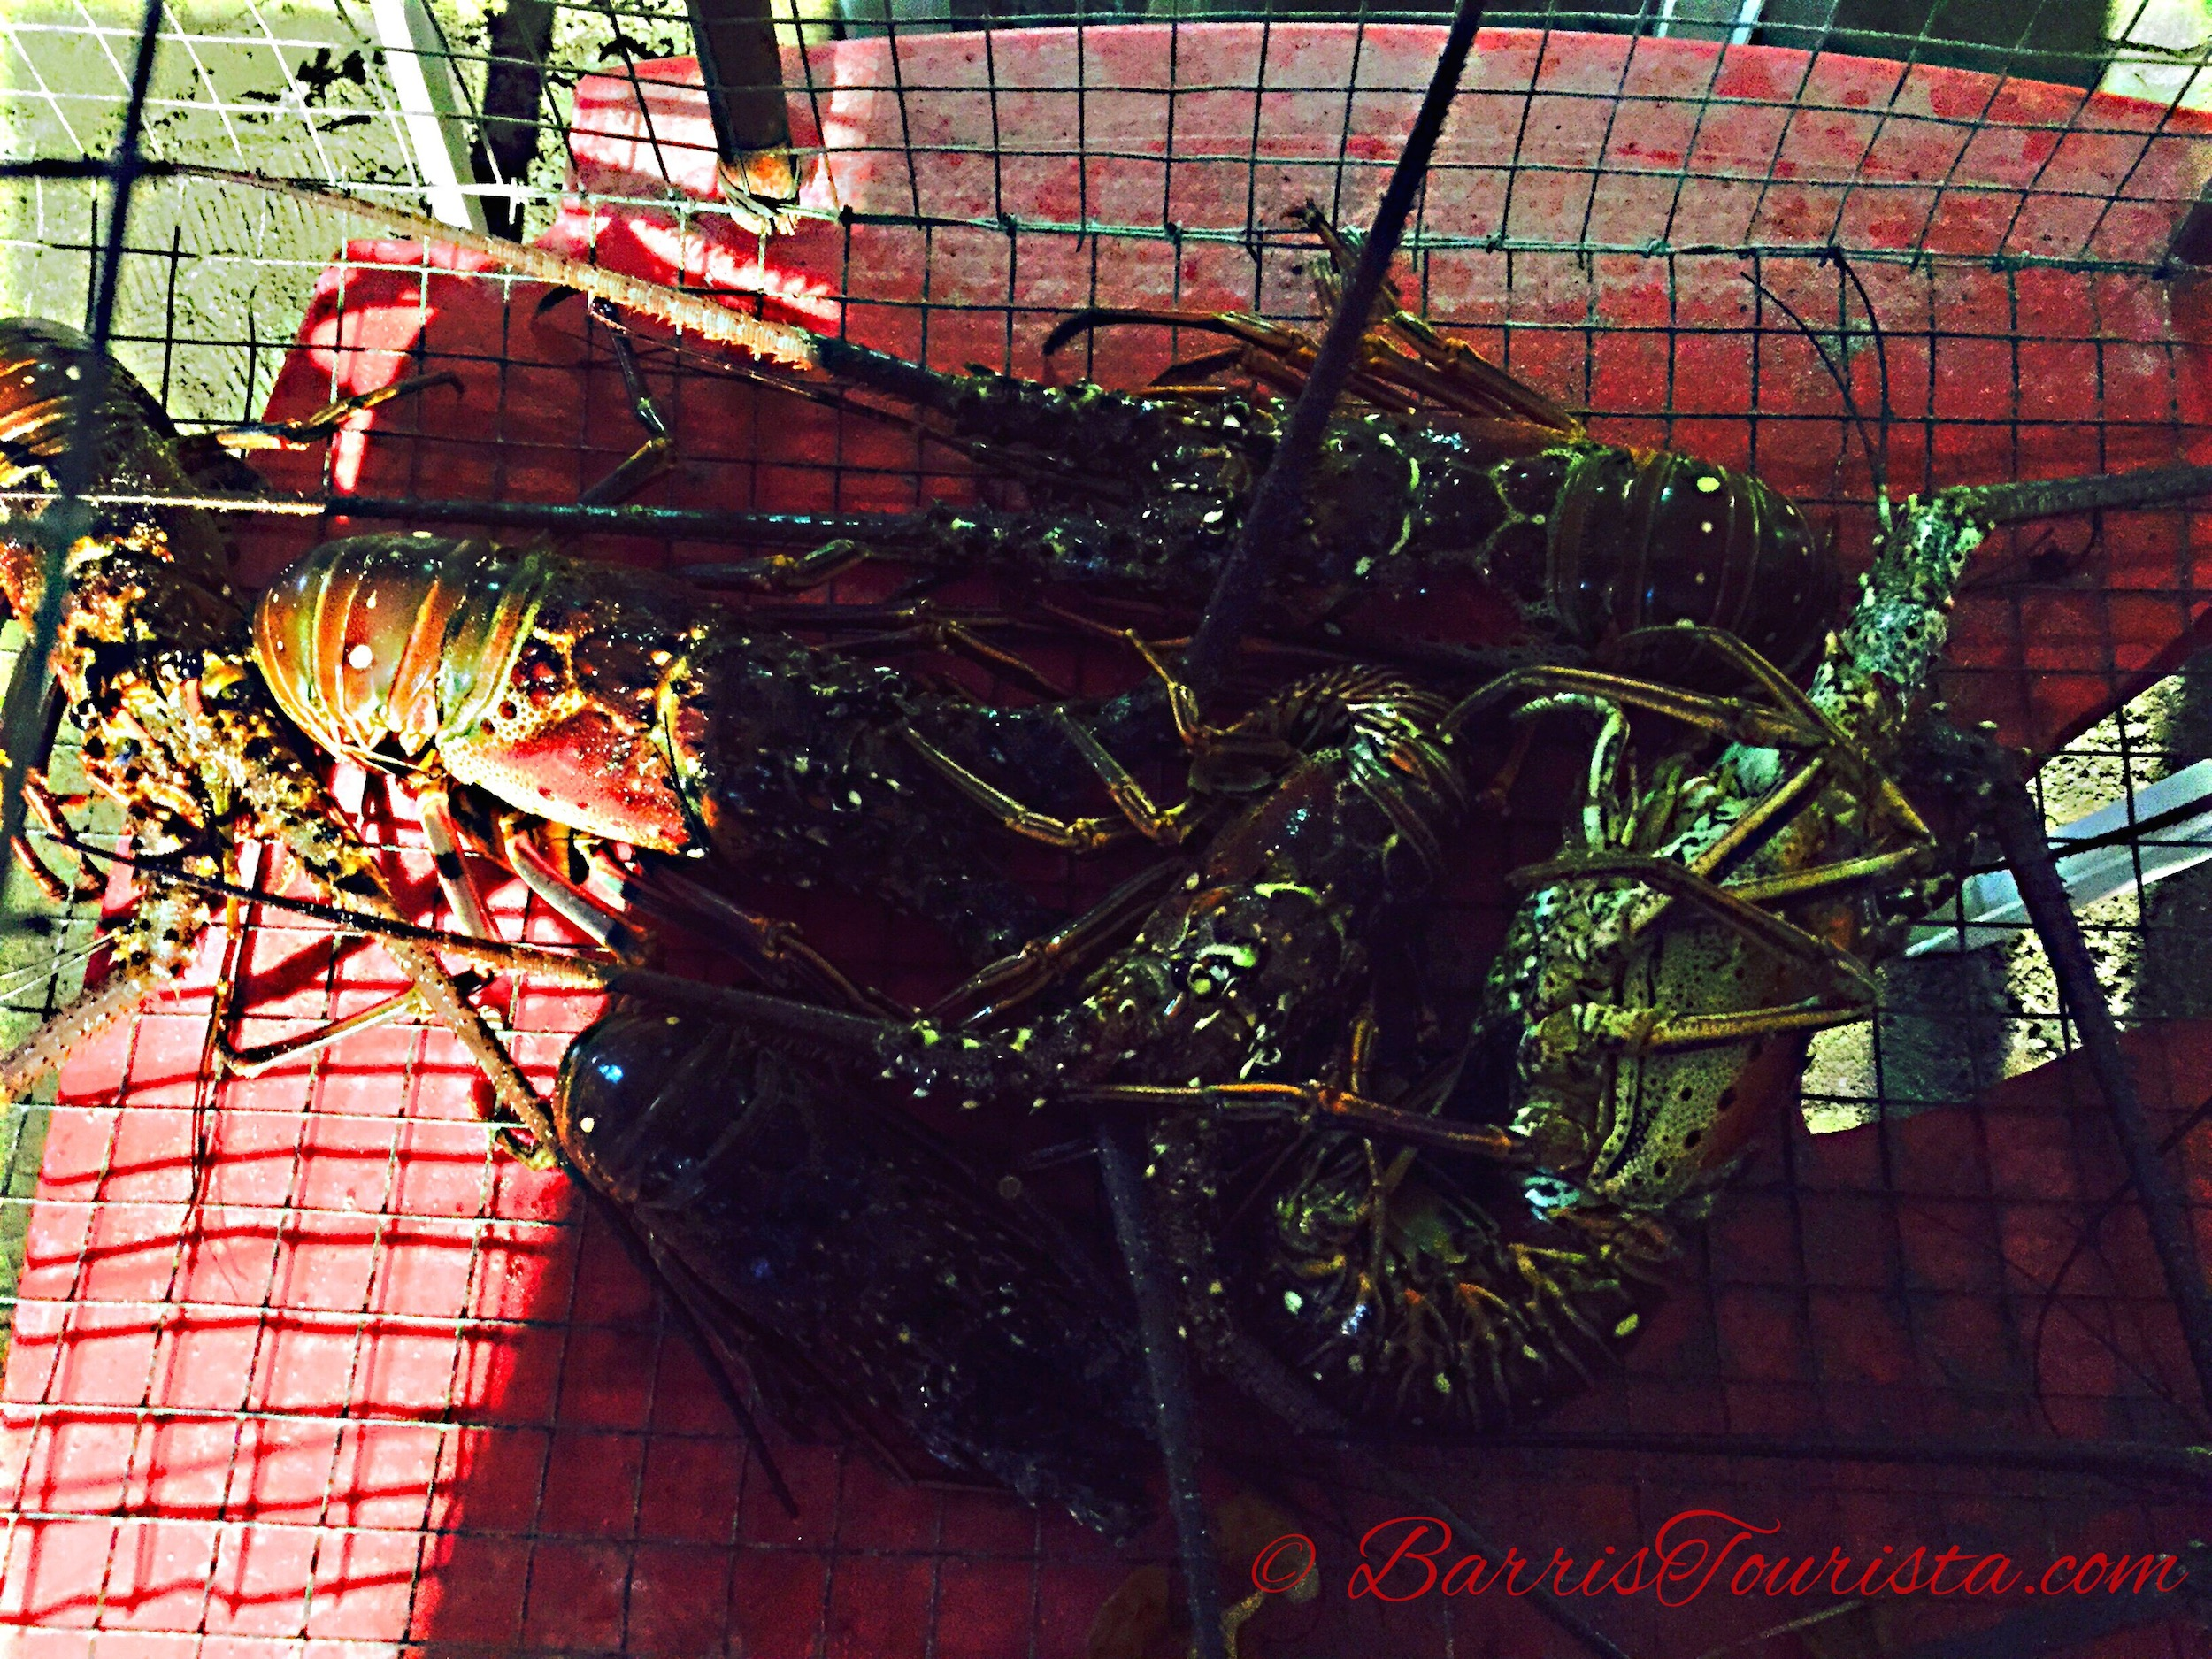 BarrisTourista-Martinique Live Lobster